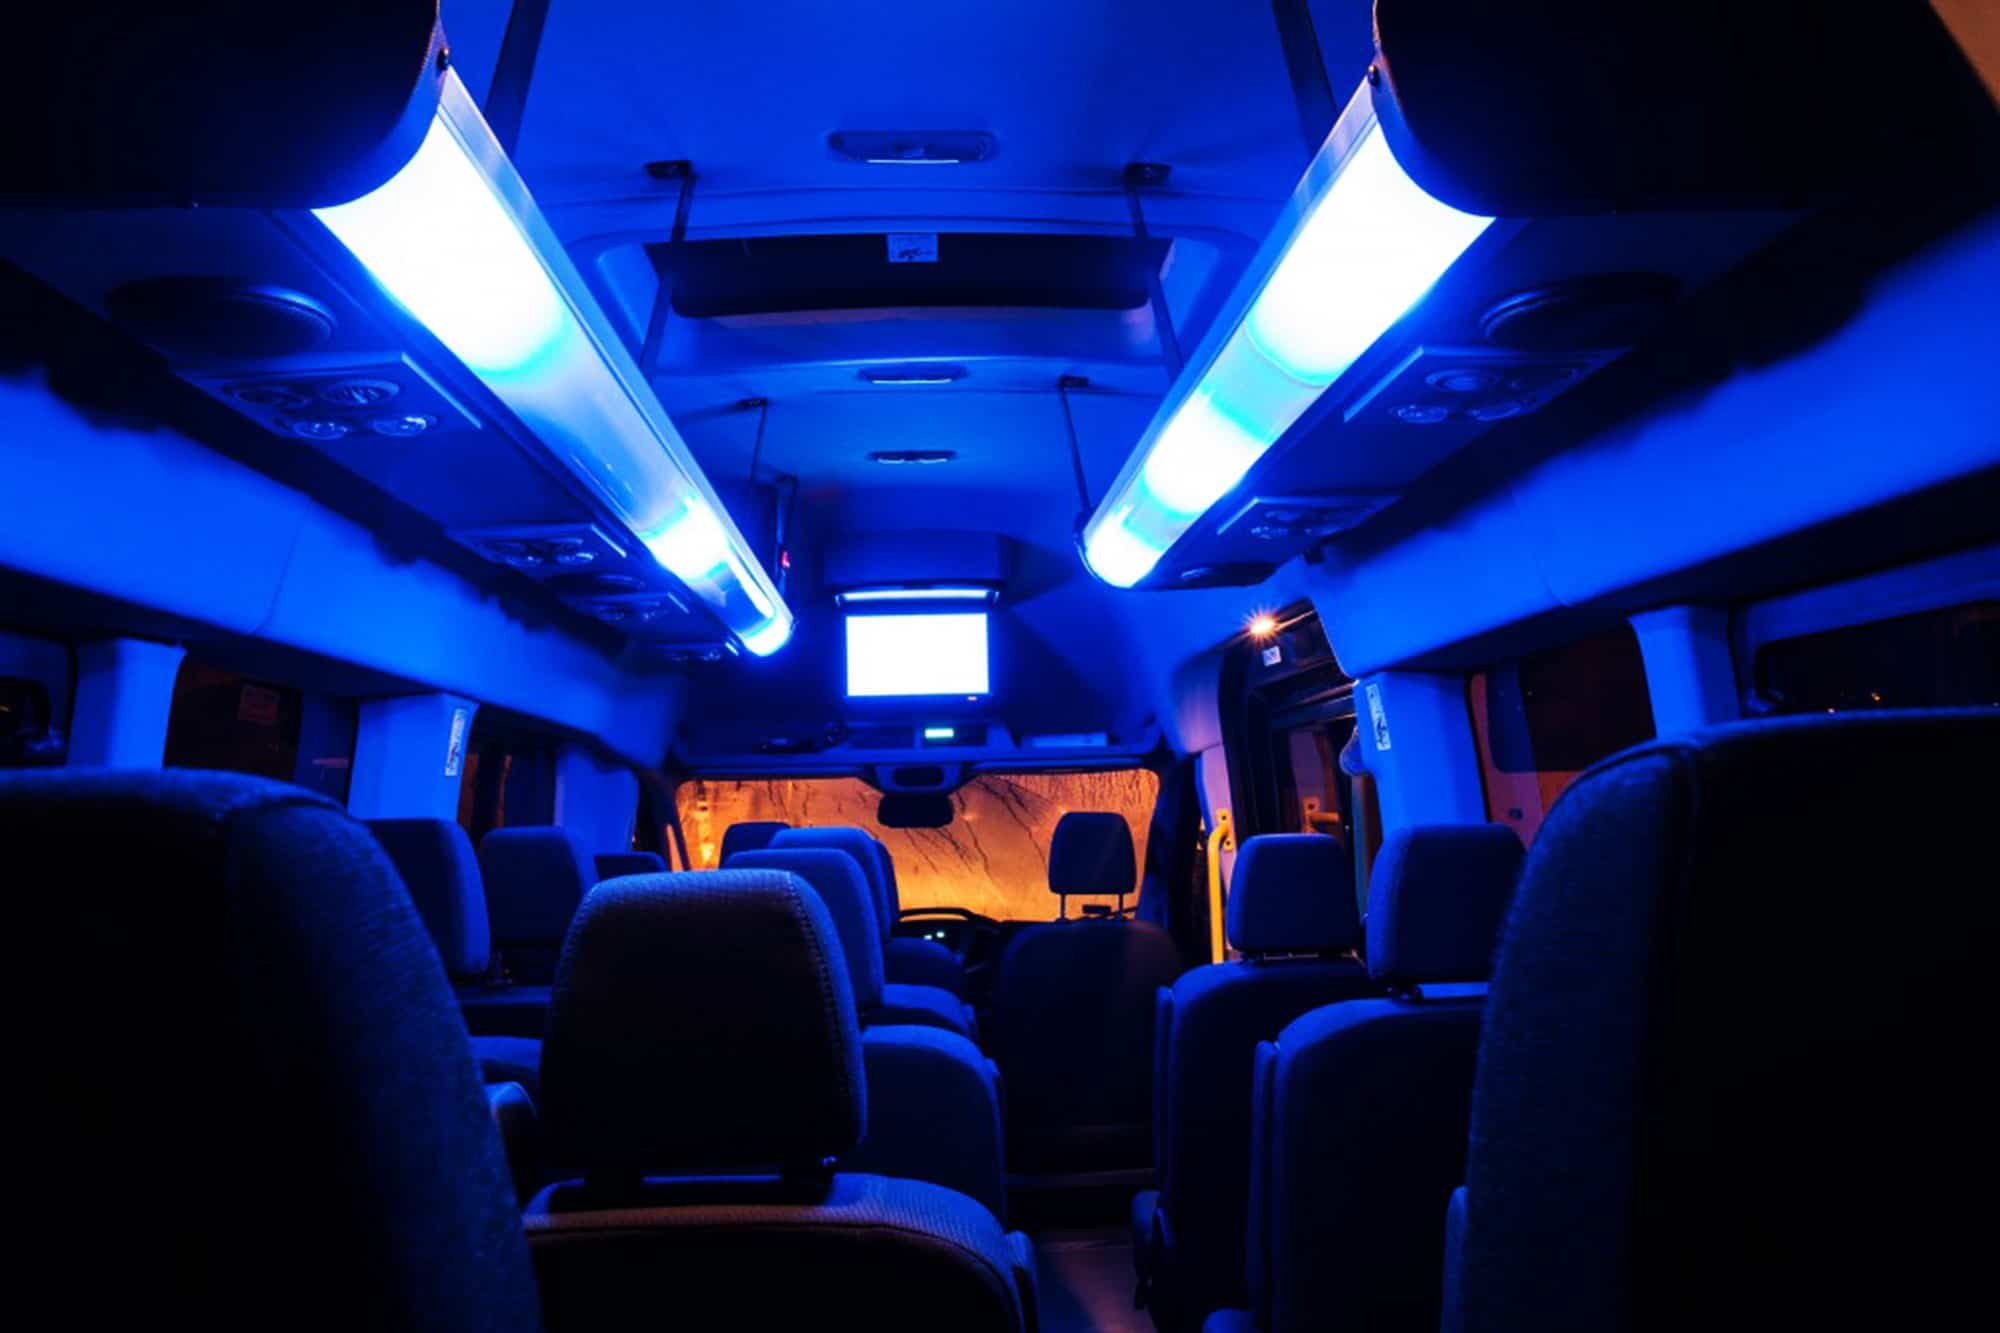 Inside of the mercedes sprinter transfer to chopin airport